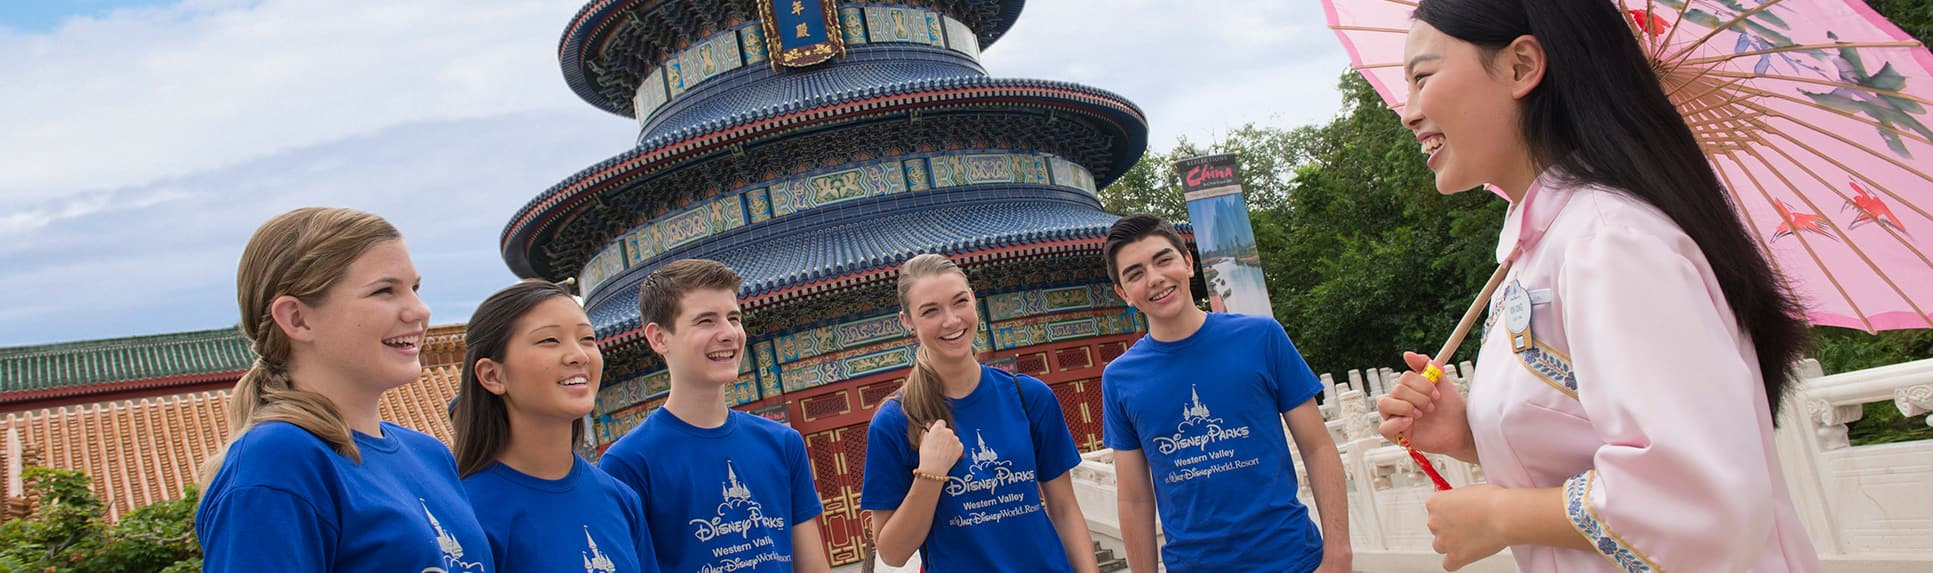 Young adults smiling with a Cast Member near the Temple of Heaven at Epcot